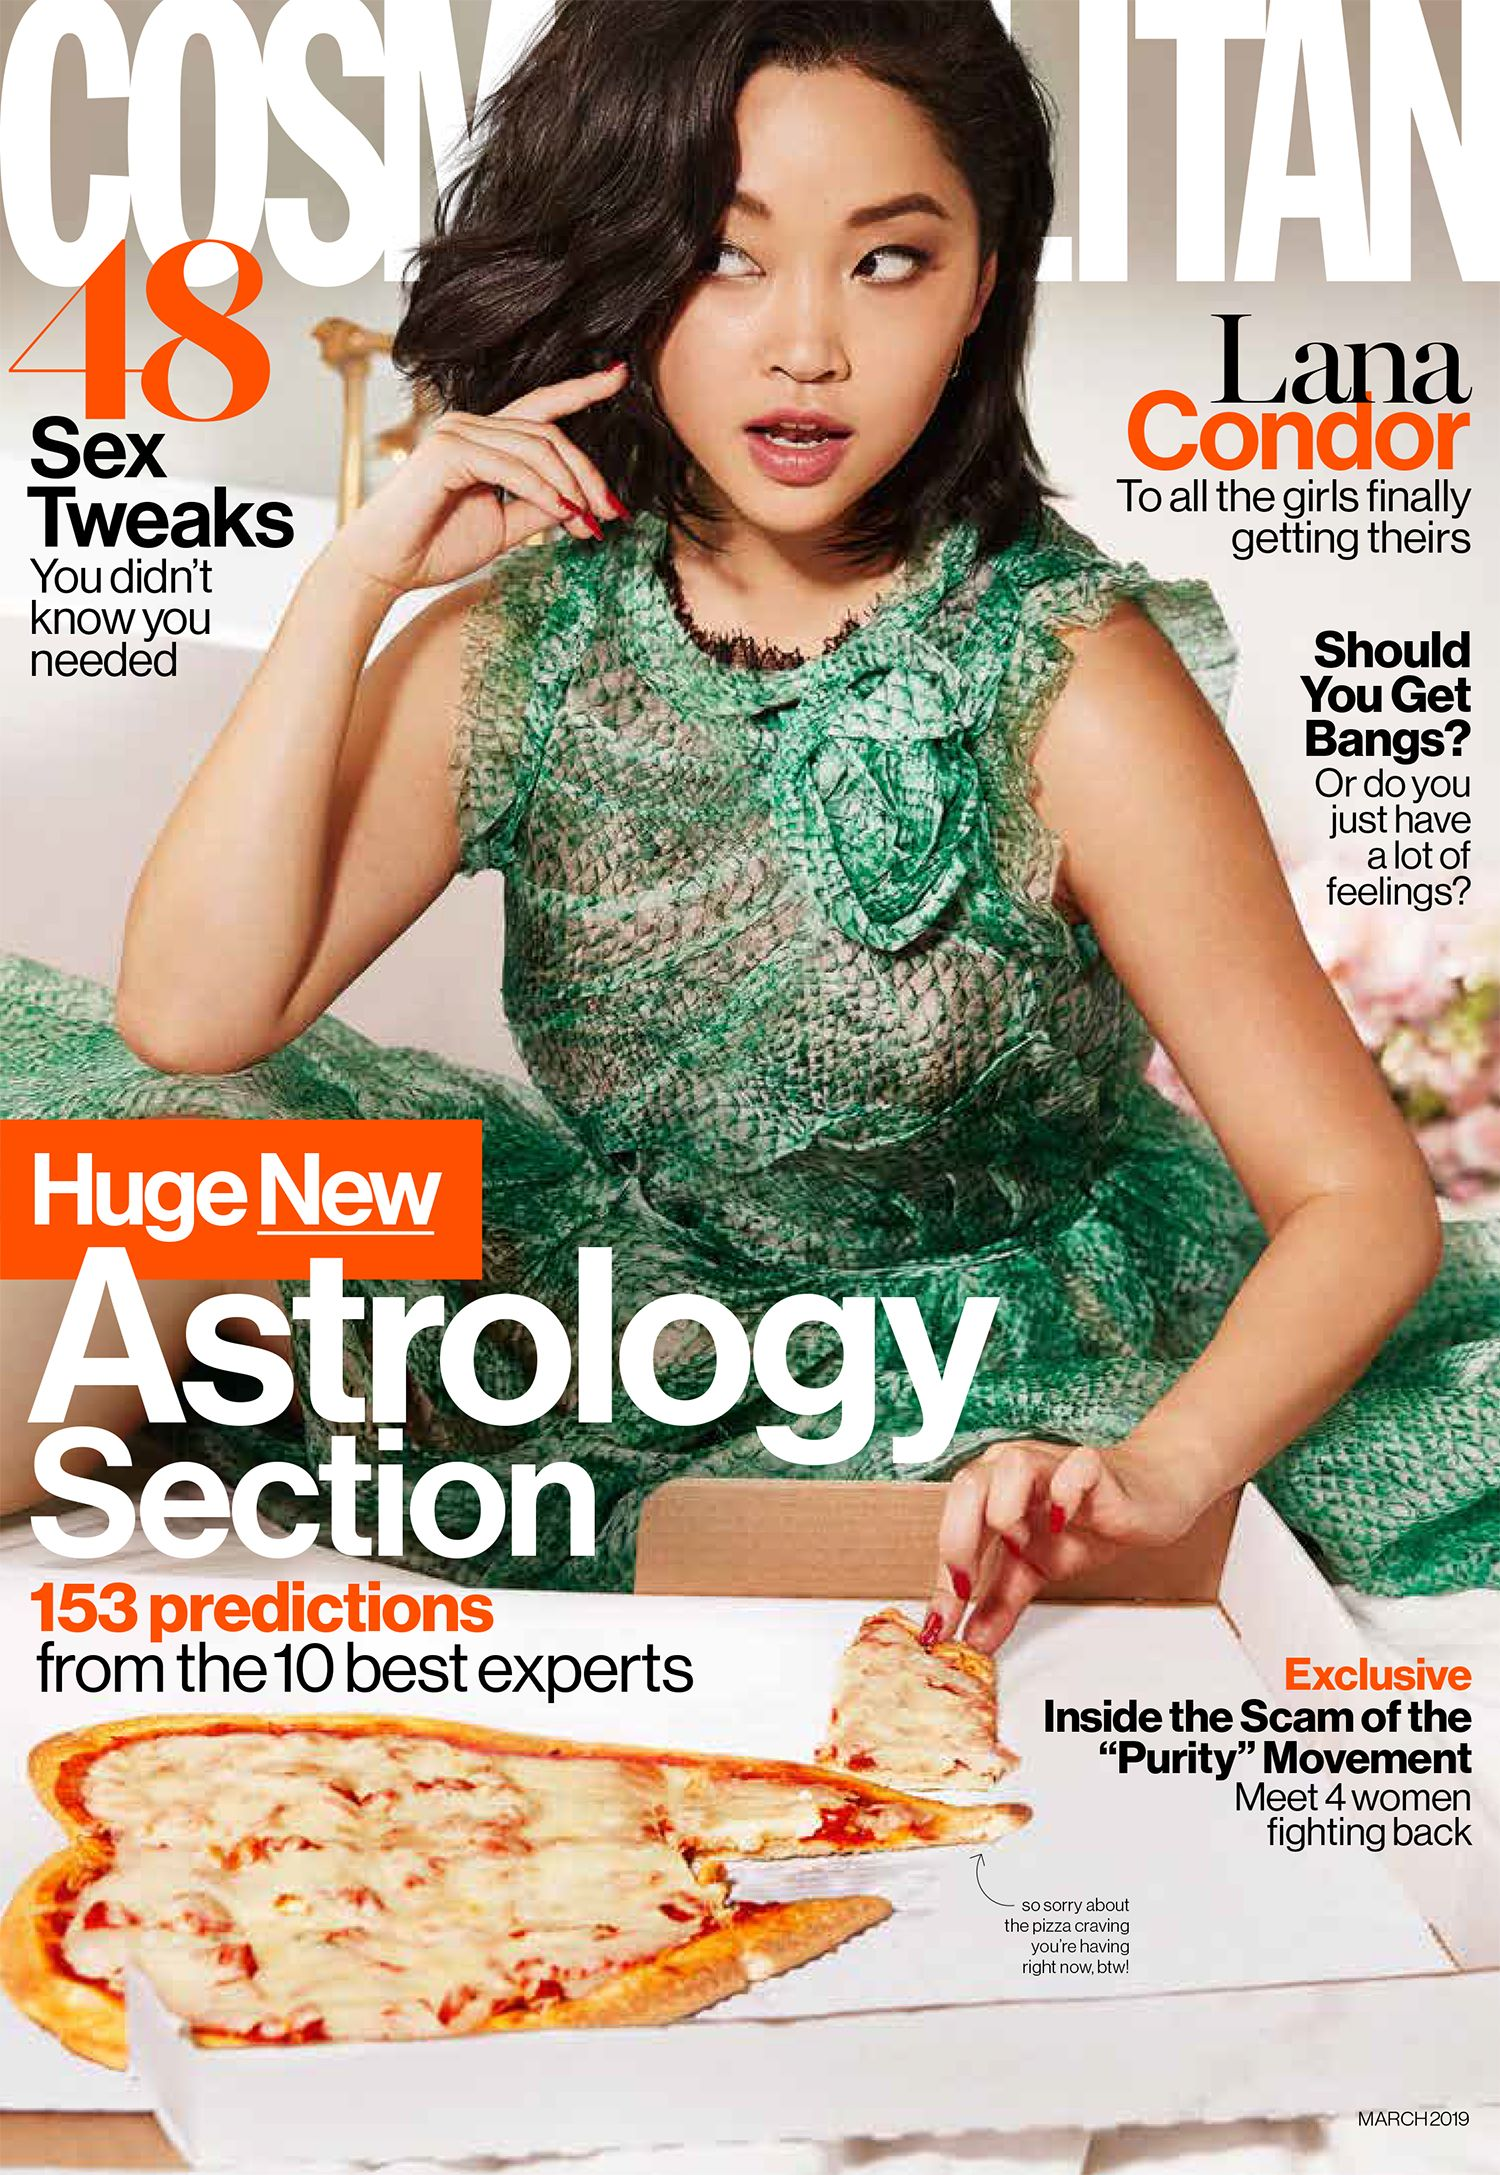 Think You Know Our March Cover Star? You Don't